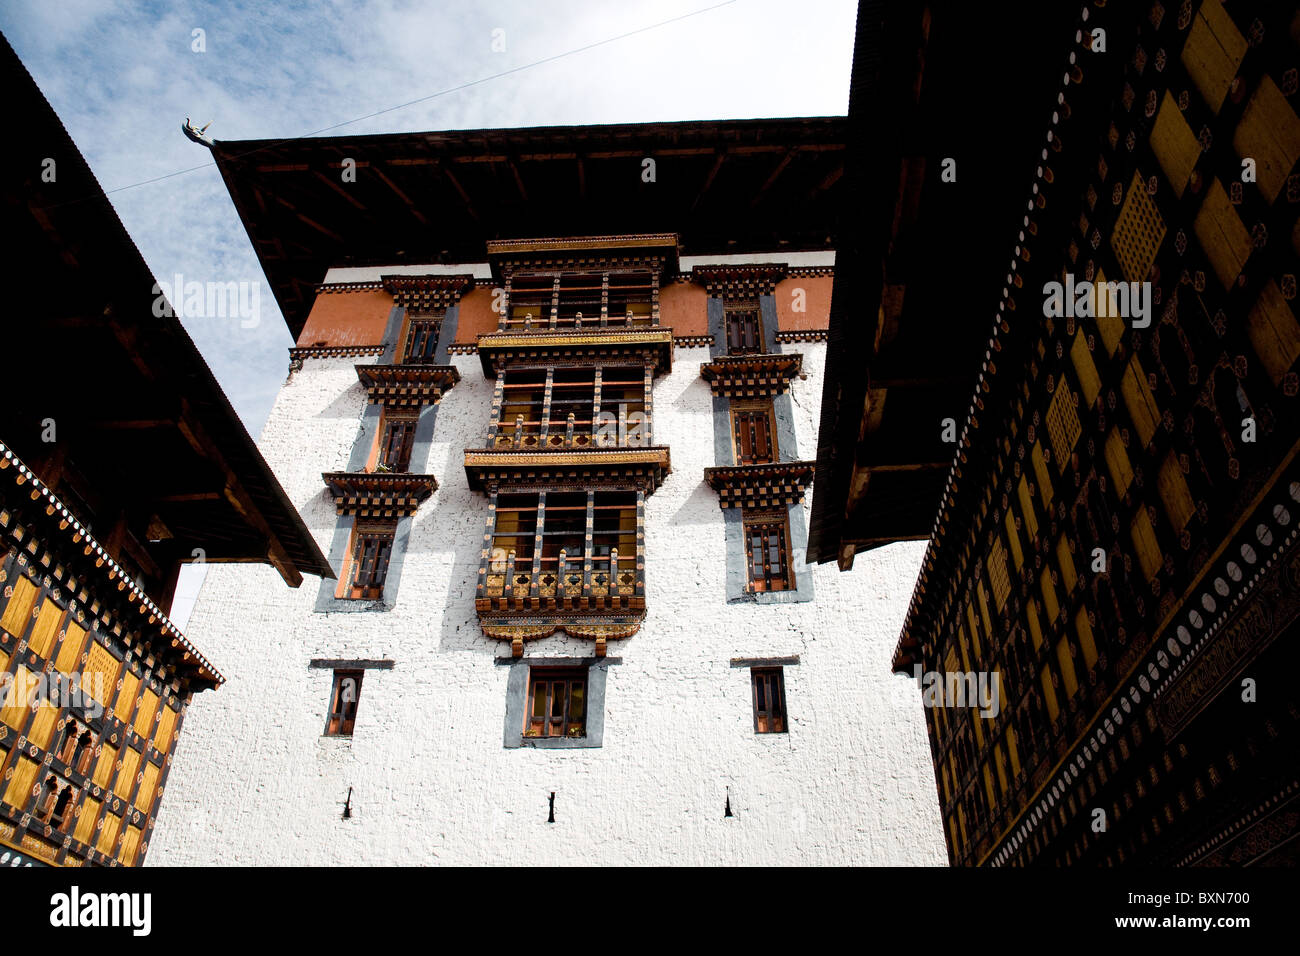 looking up to the monks' area within the walls of the Paro dzong, or fortress, in Bhutan - Stock Image